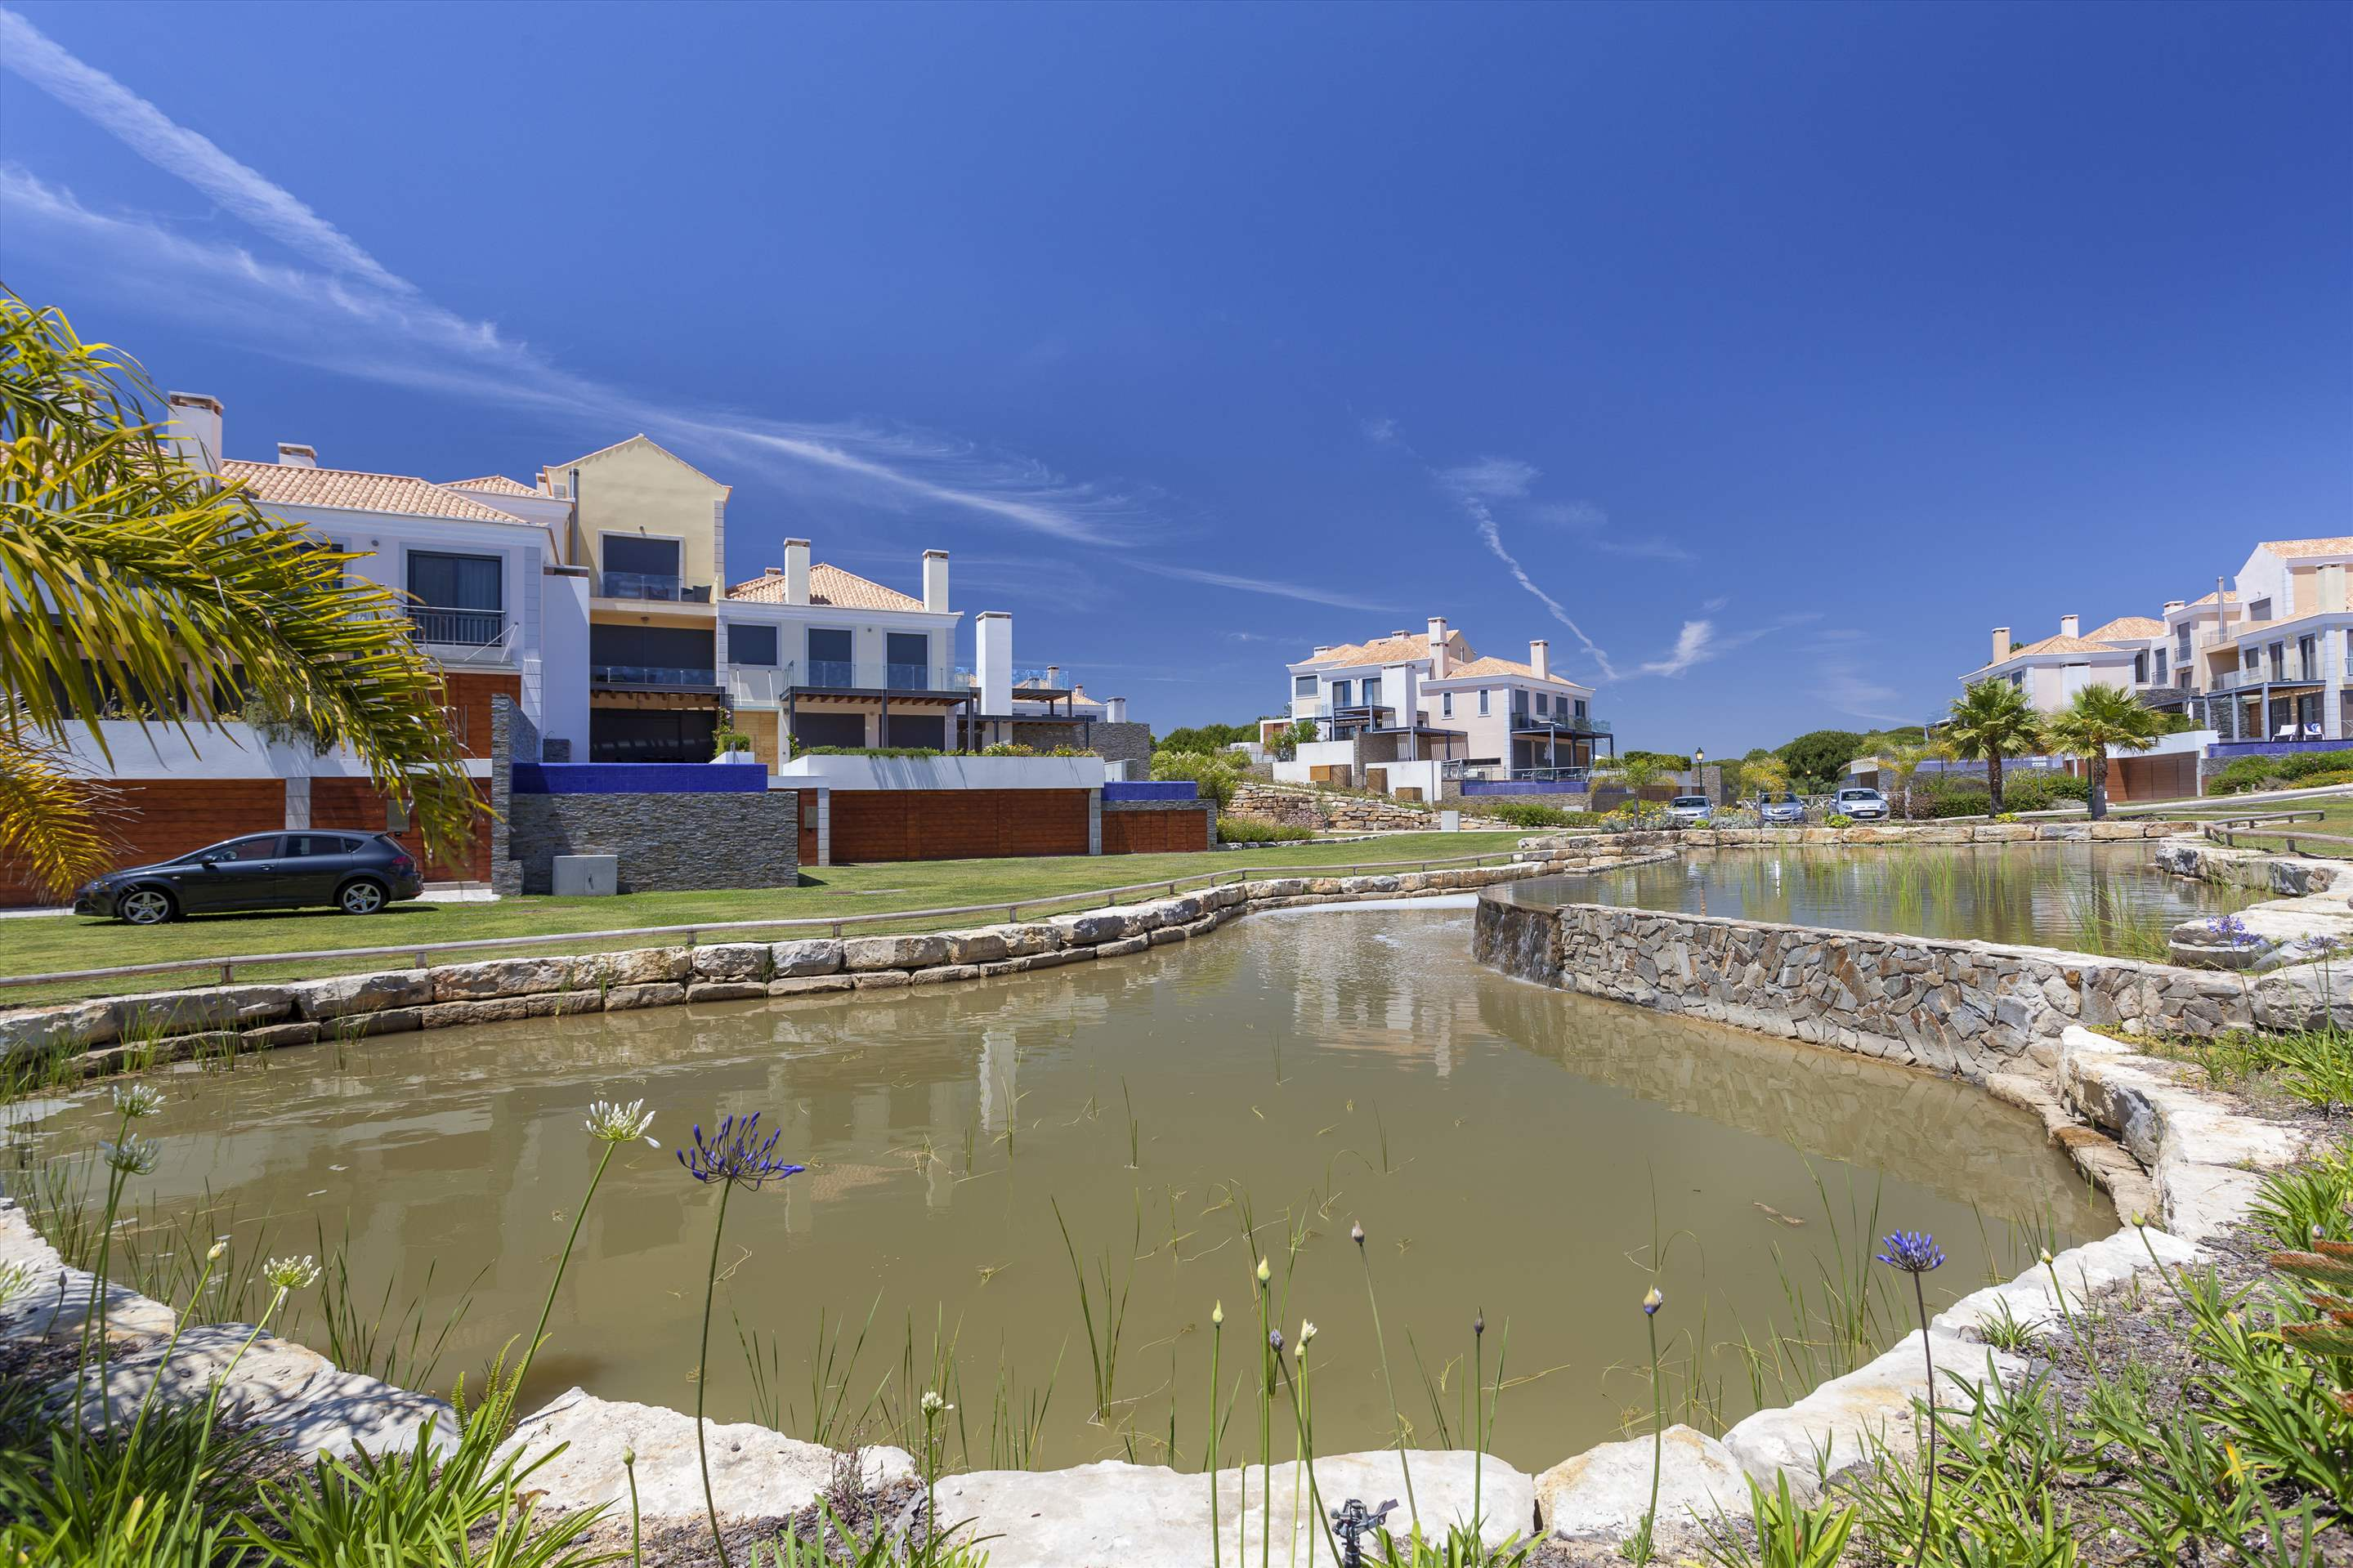 Villa Emily, 3 bedroom villa in Vale do Lobo, Algarve Photo #9